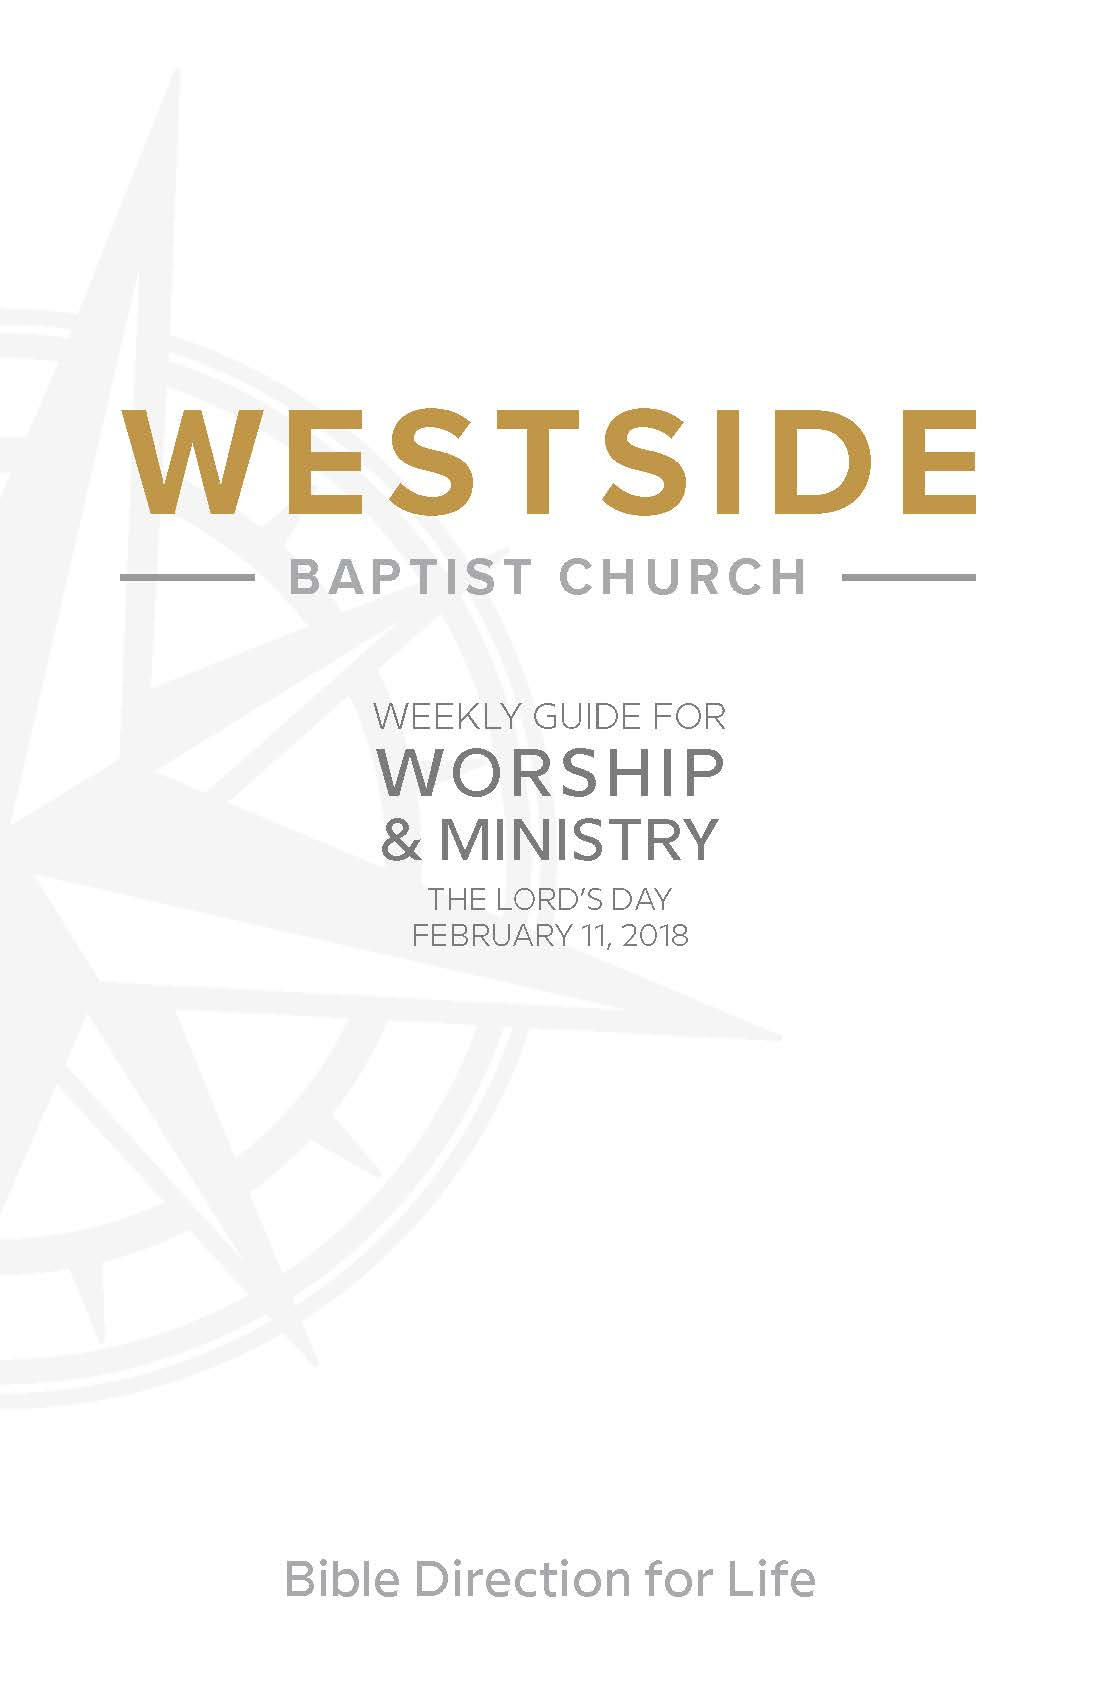 Weekly Guide for Worship and Ministry—February 11